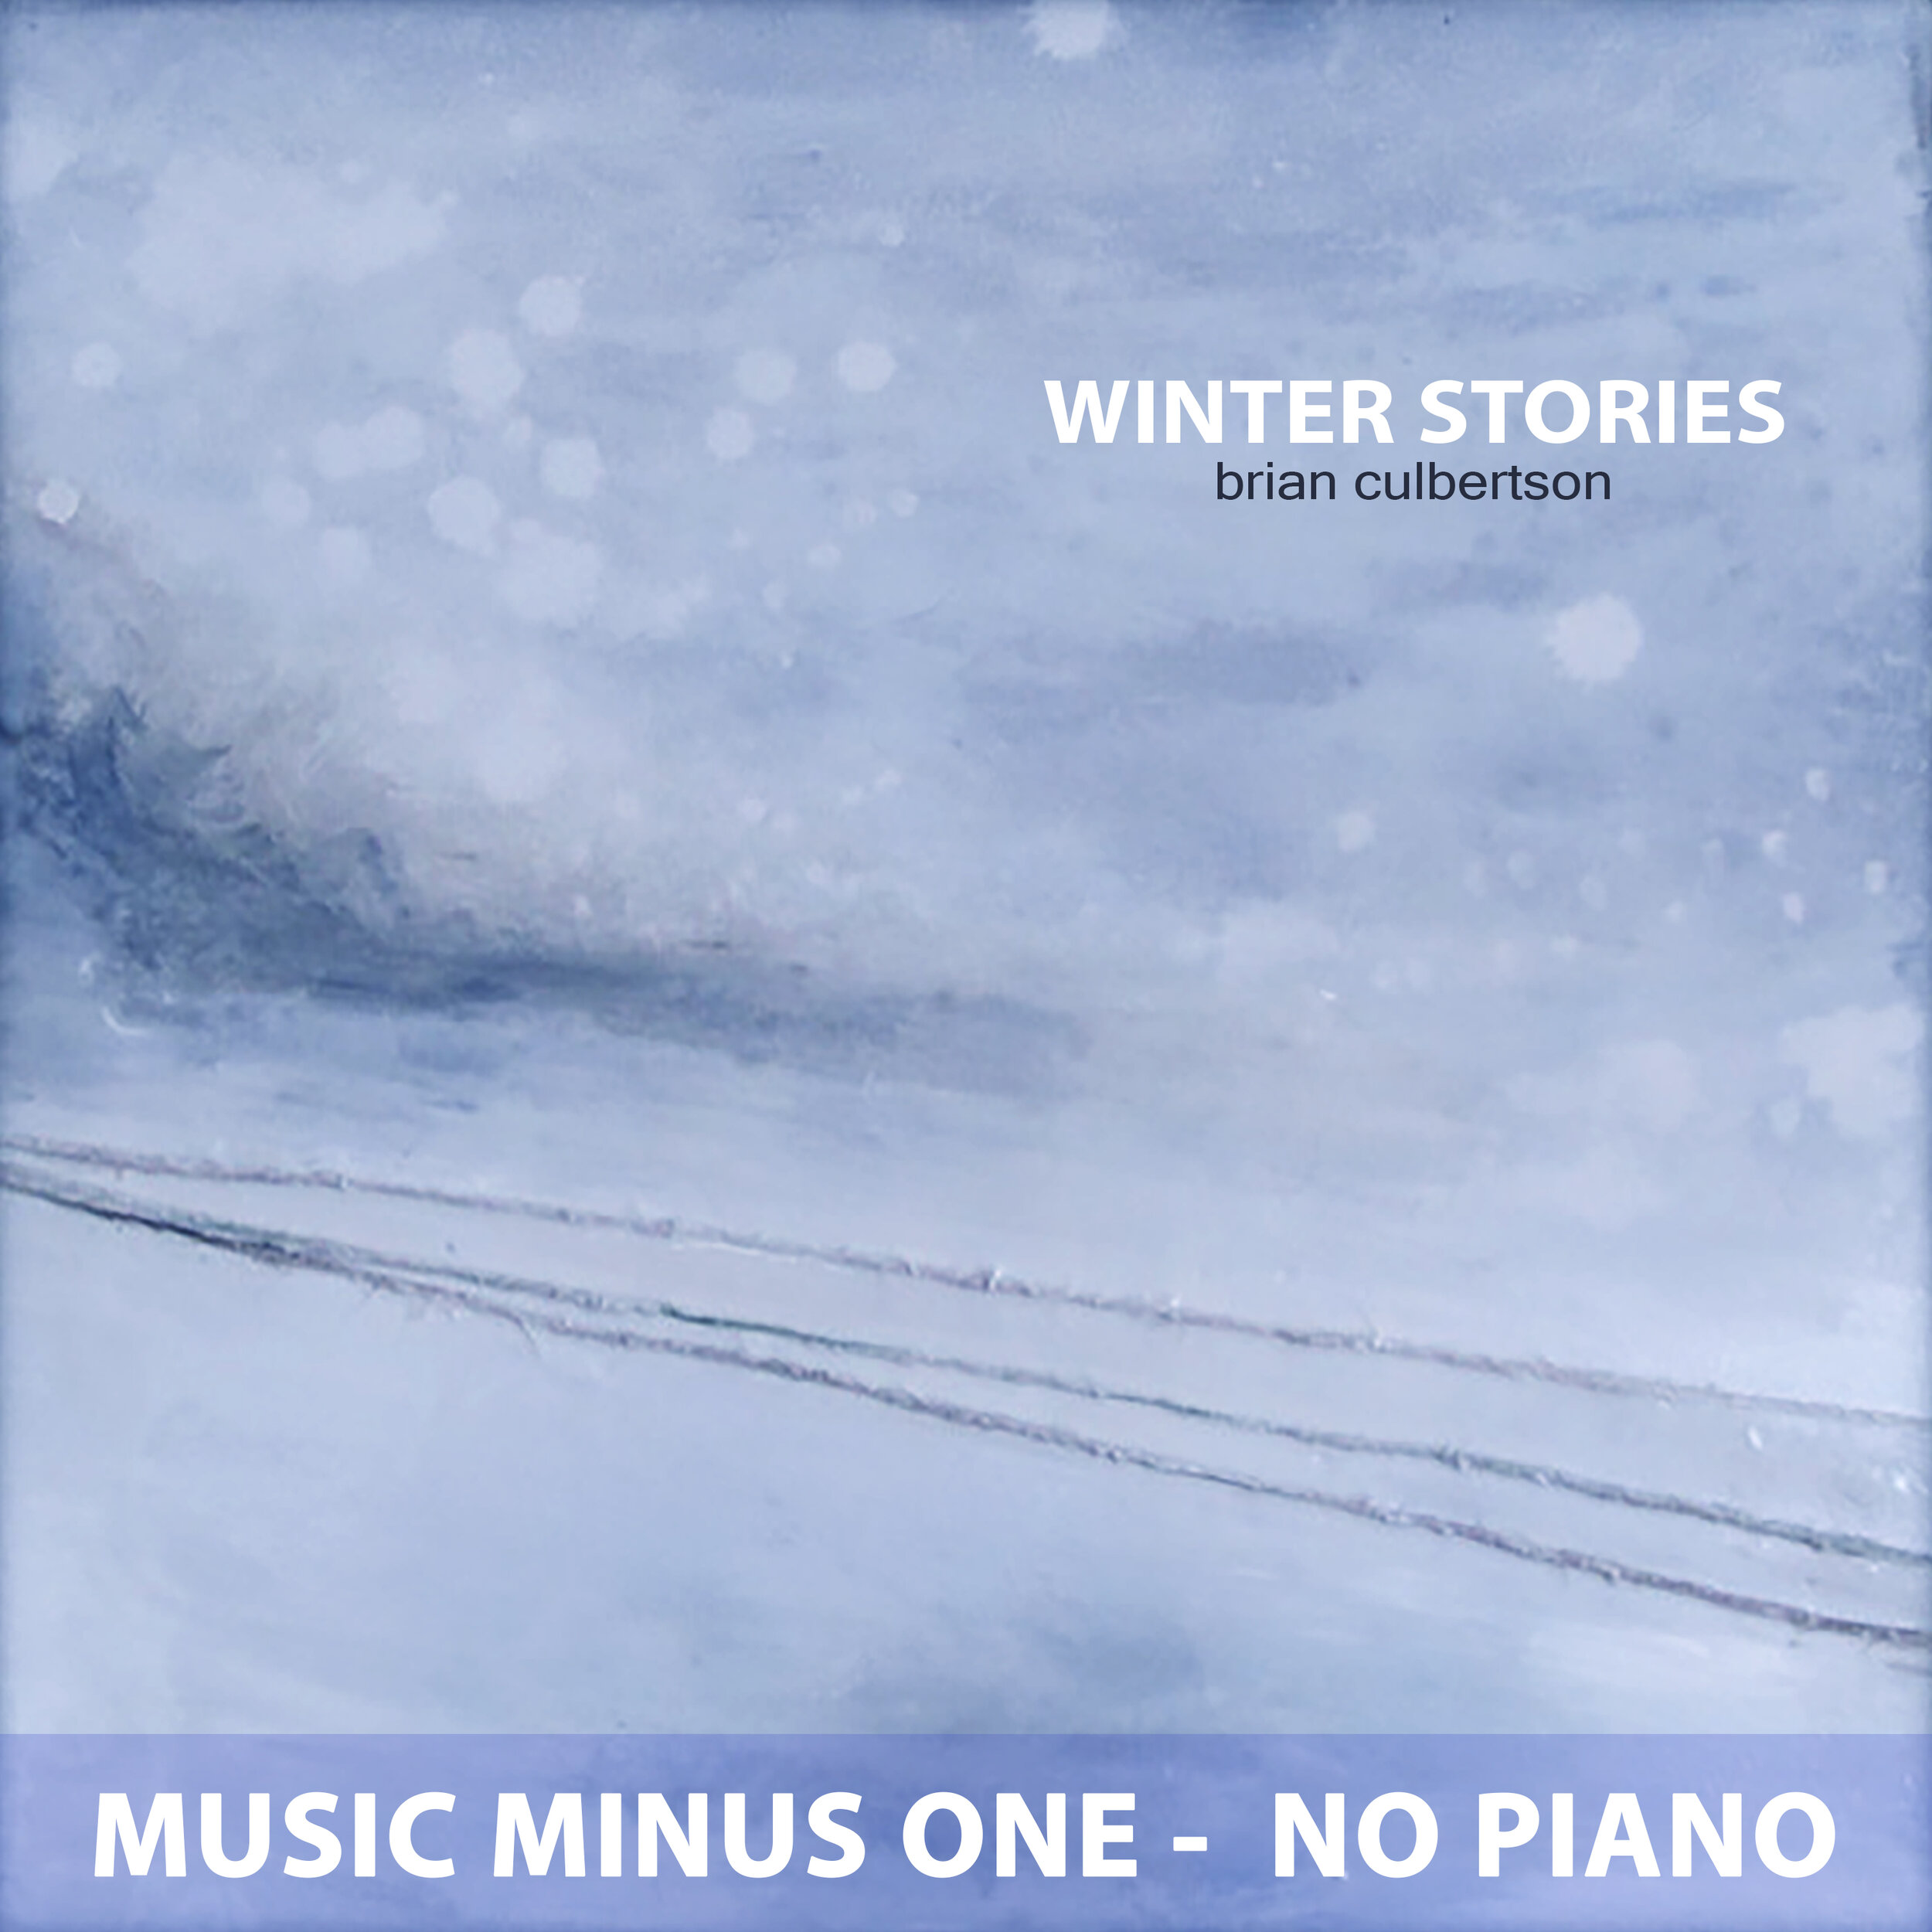 Winter Stories Cover NO PIANO.jpg